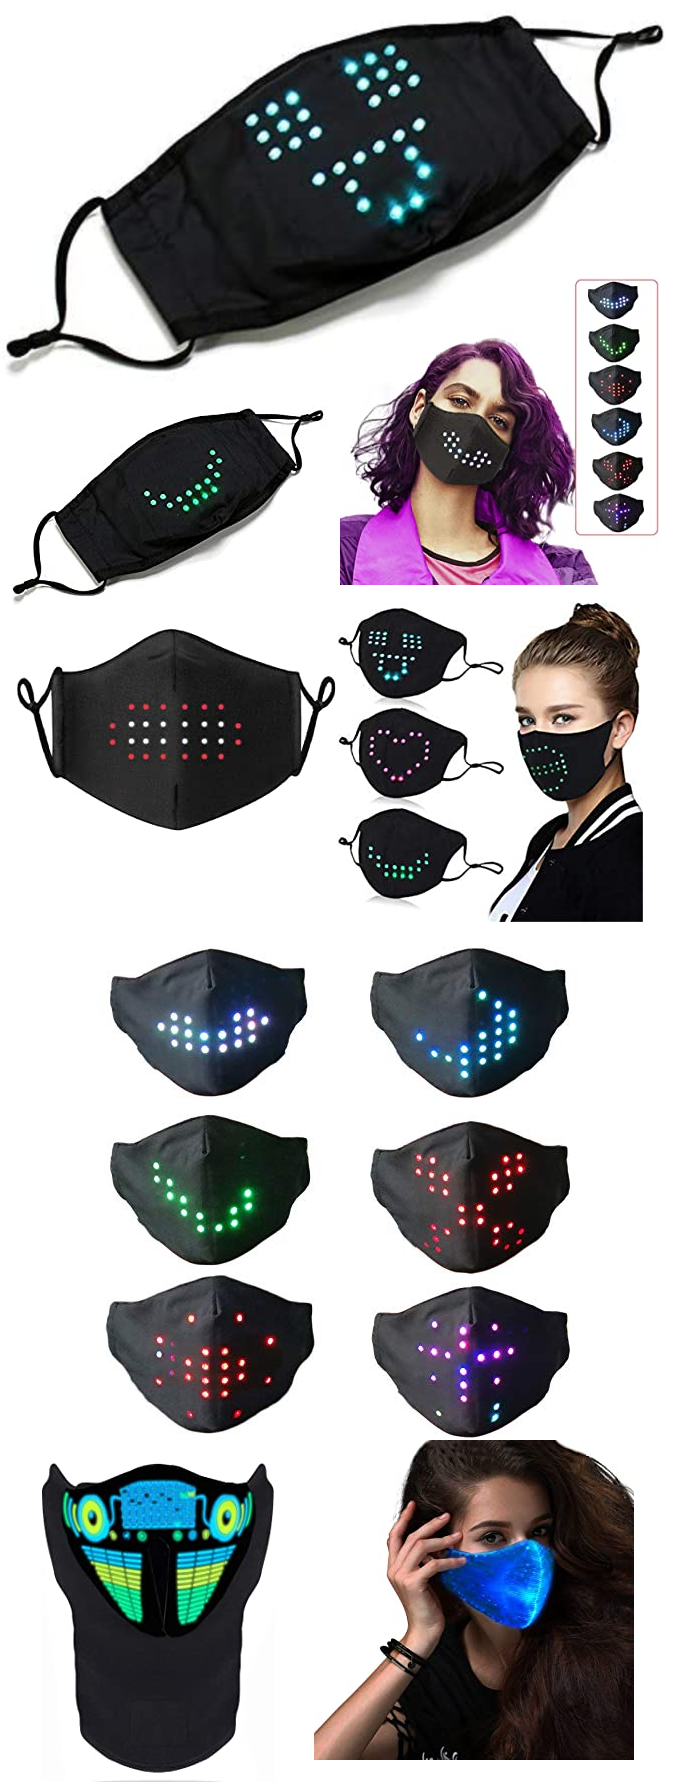 VOICE ACTIVATED FACE MASKS